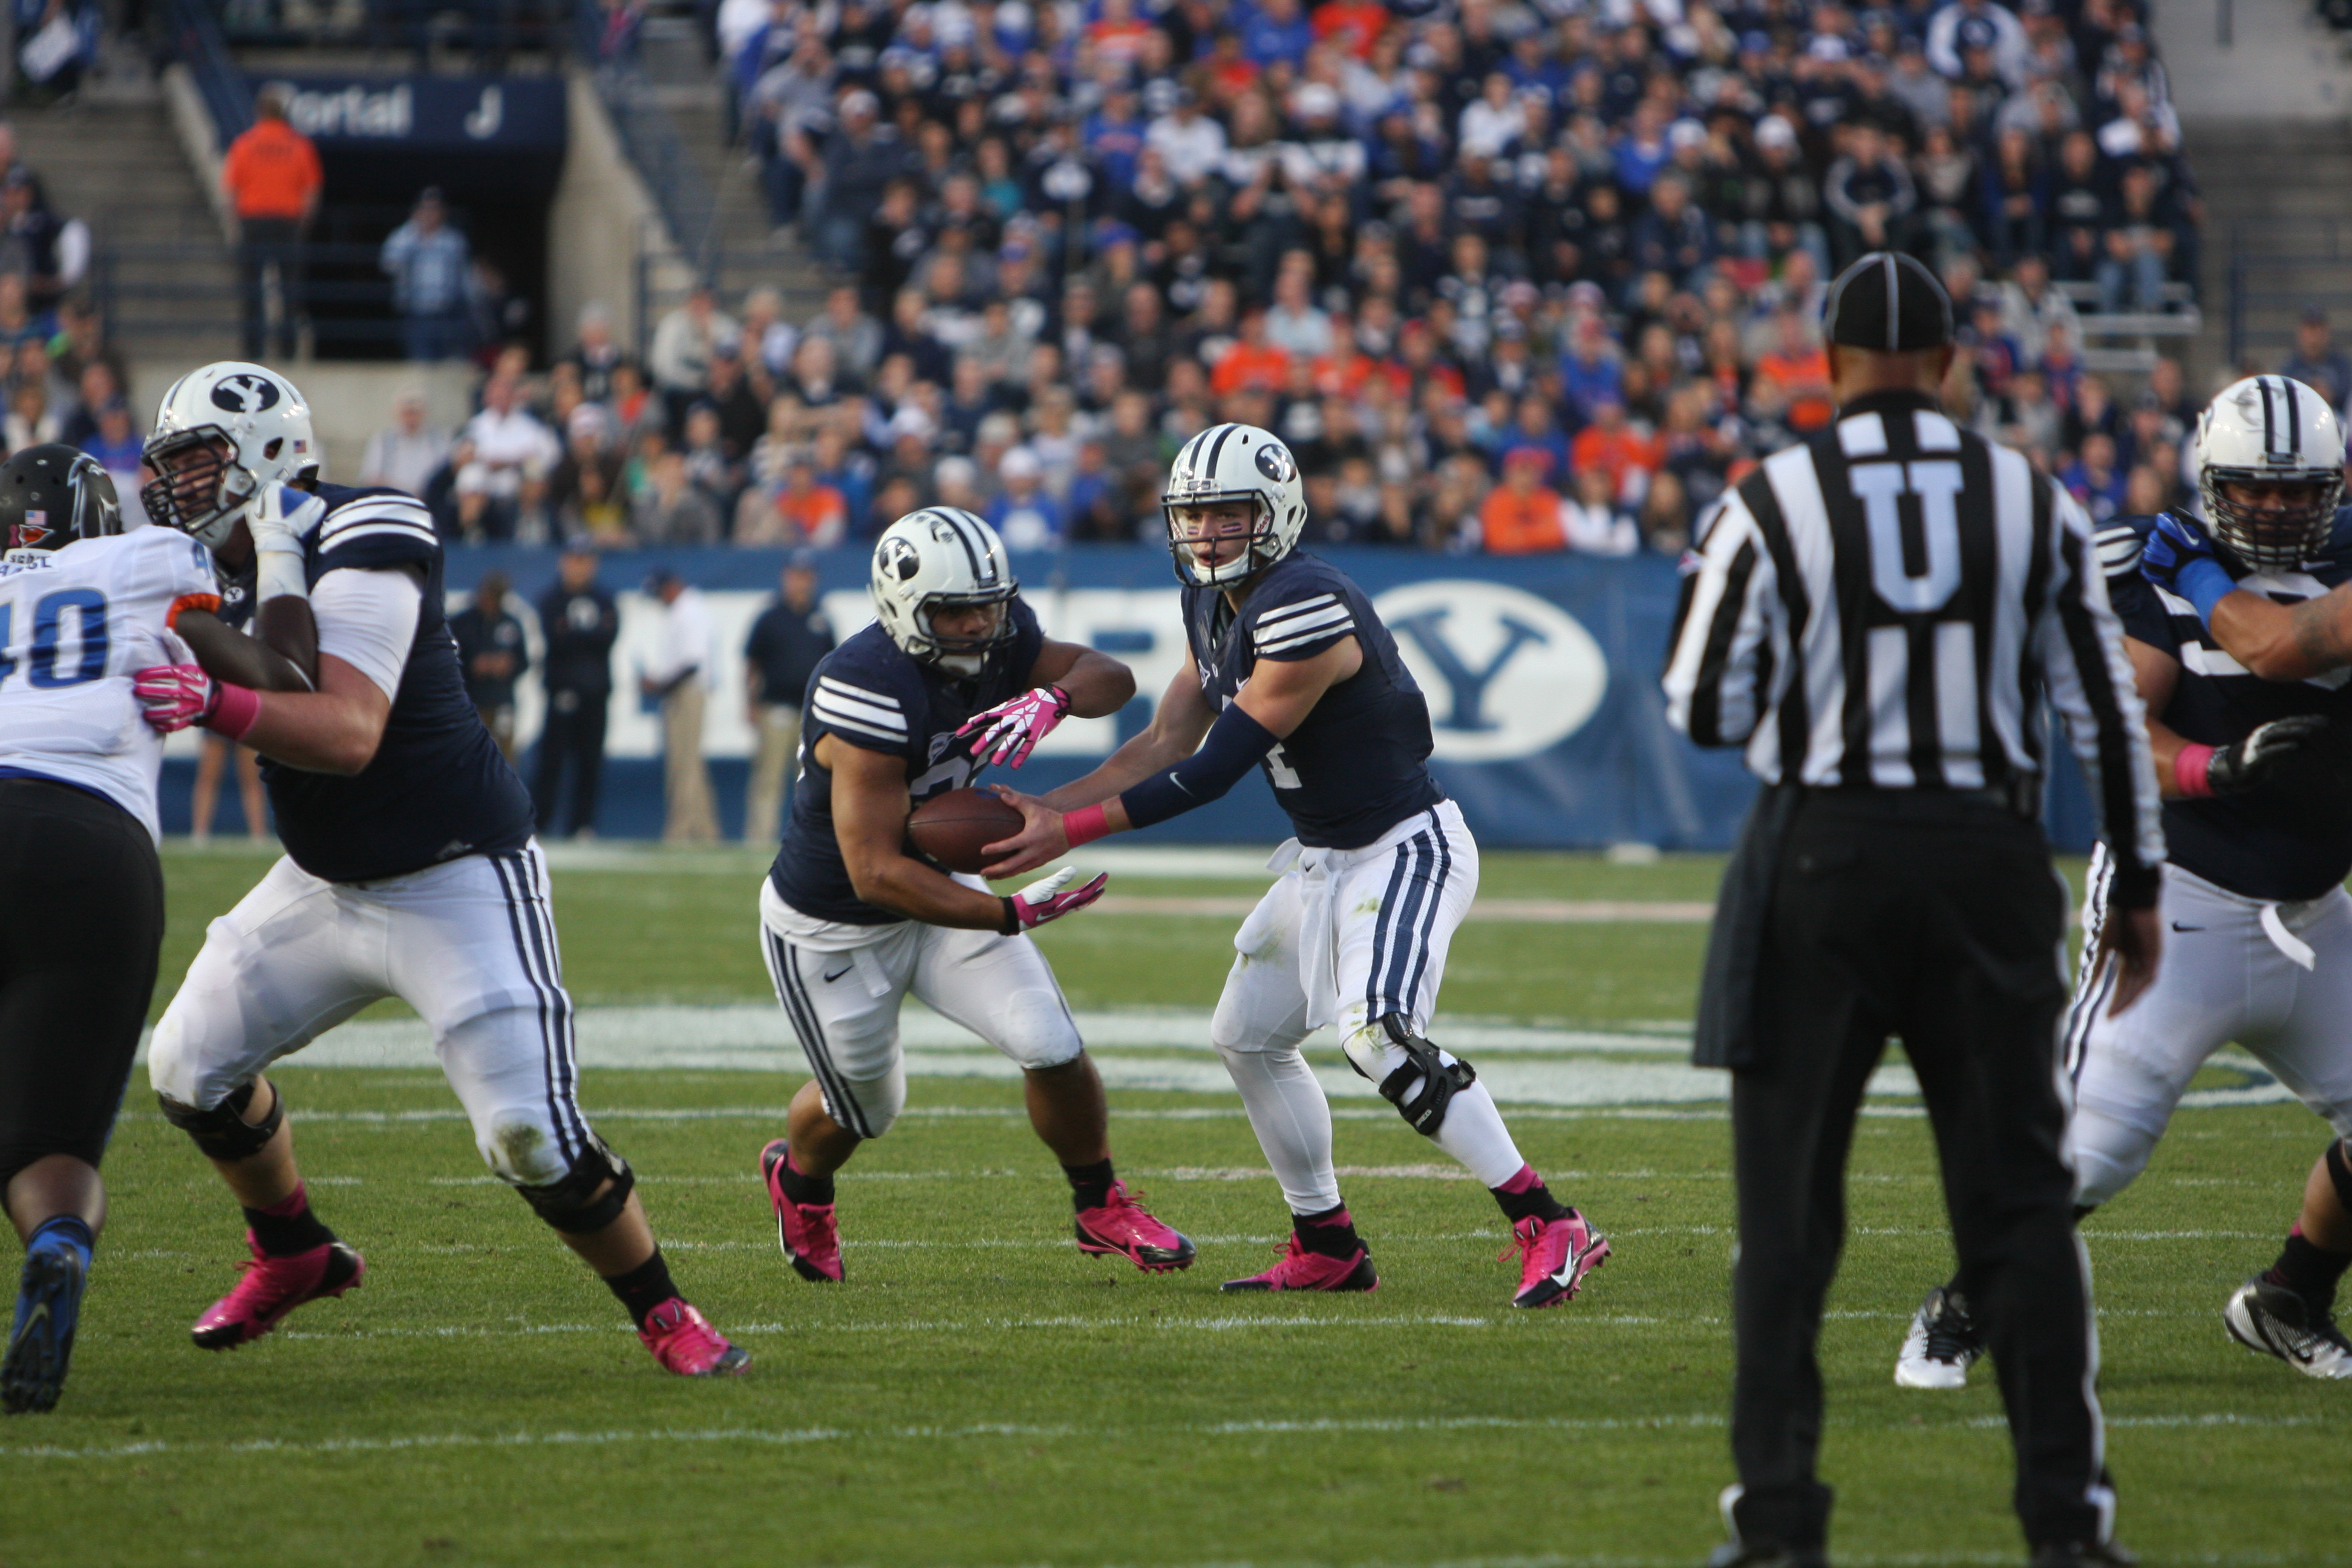 Taysom Hill hands the ball off to running back Paul Lasike. Photo by Maddi Dayton.